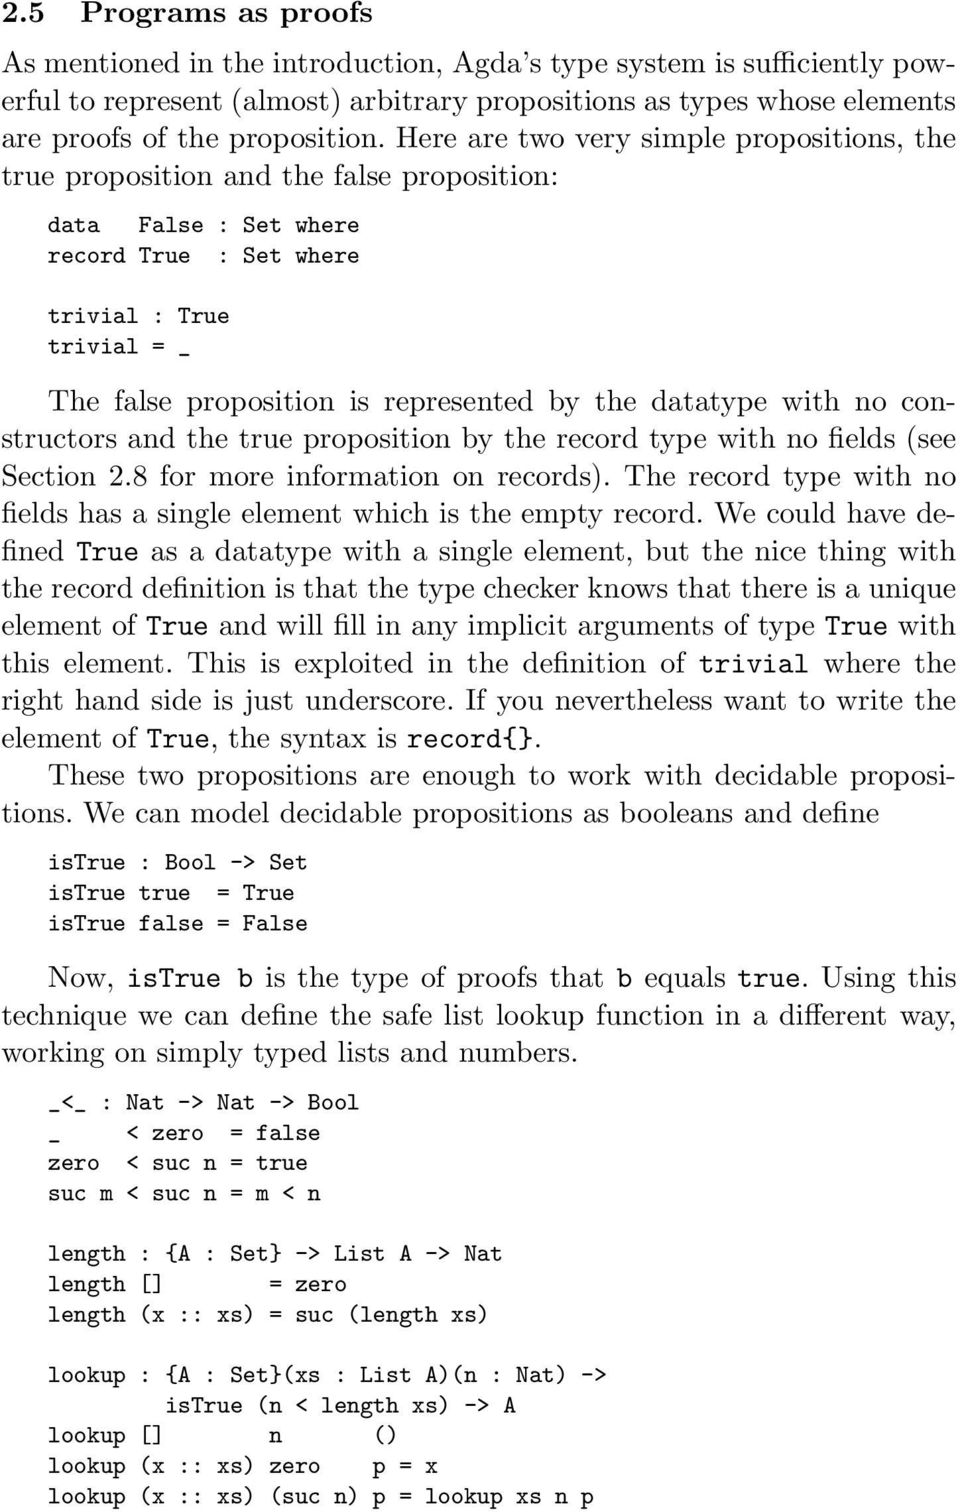 by the datatype with no constructors and the true proposition by the record type with no fields (see Section 2.8 for more information on records).